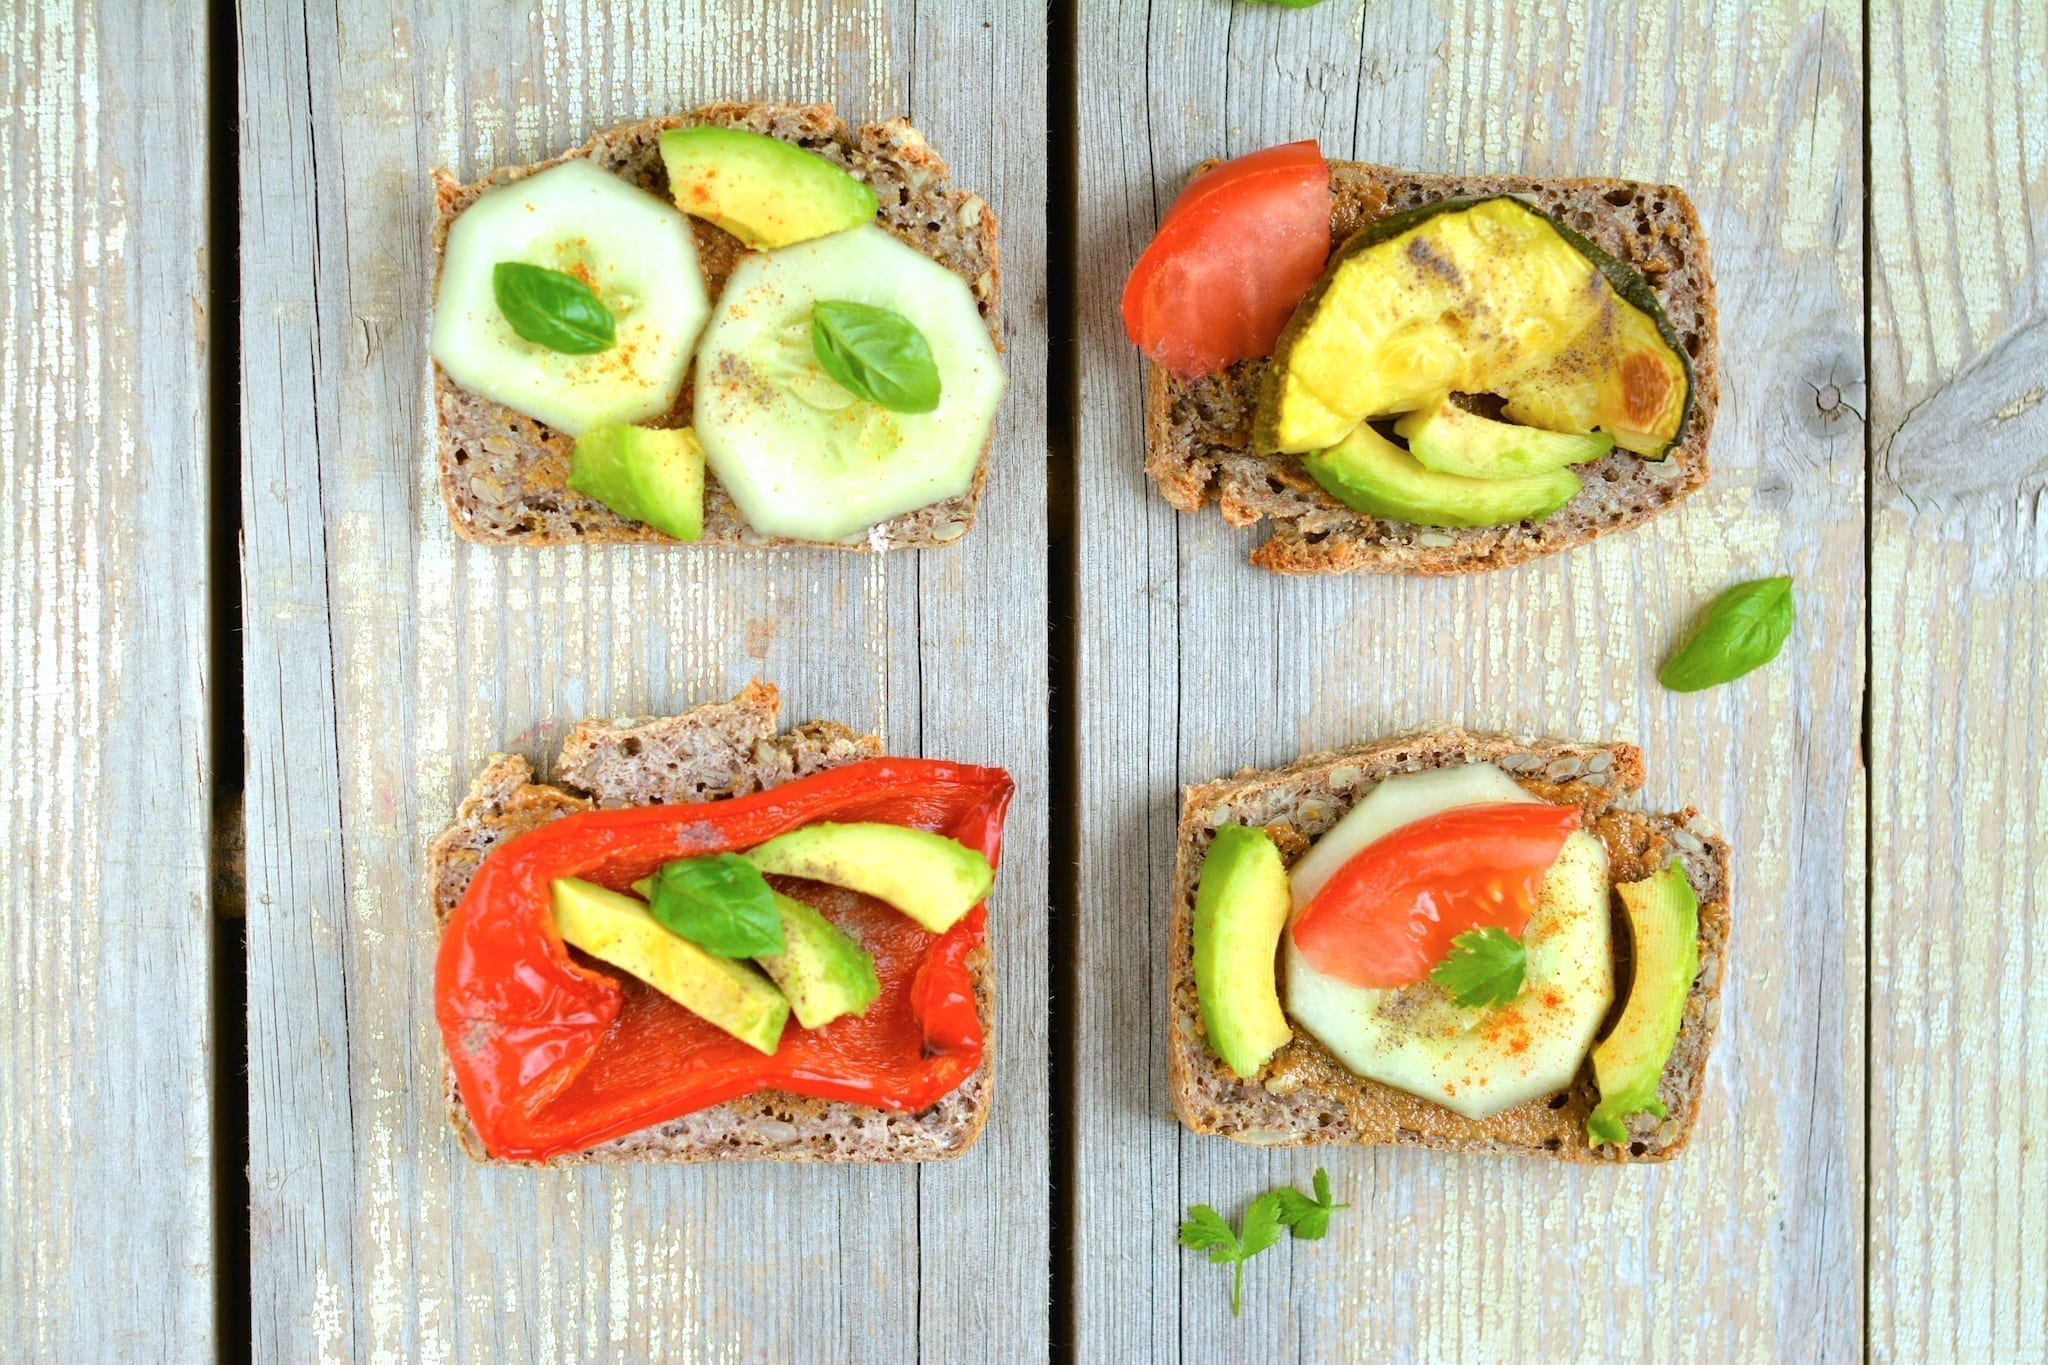 Fermented buckwheat bread sandwiches, vegan candida diet meal plans